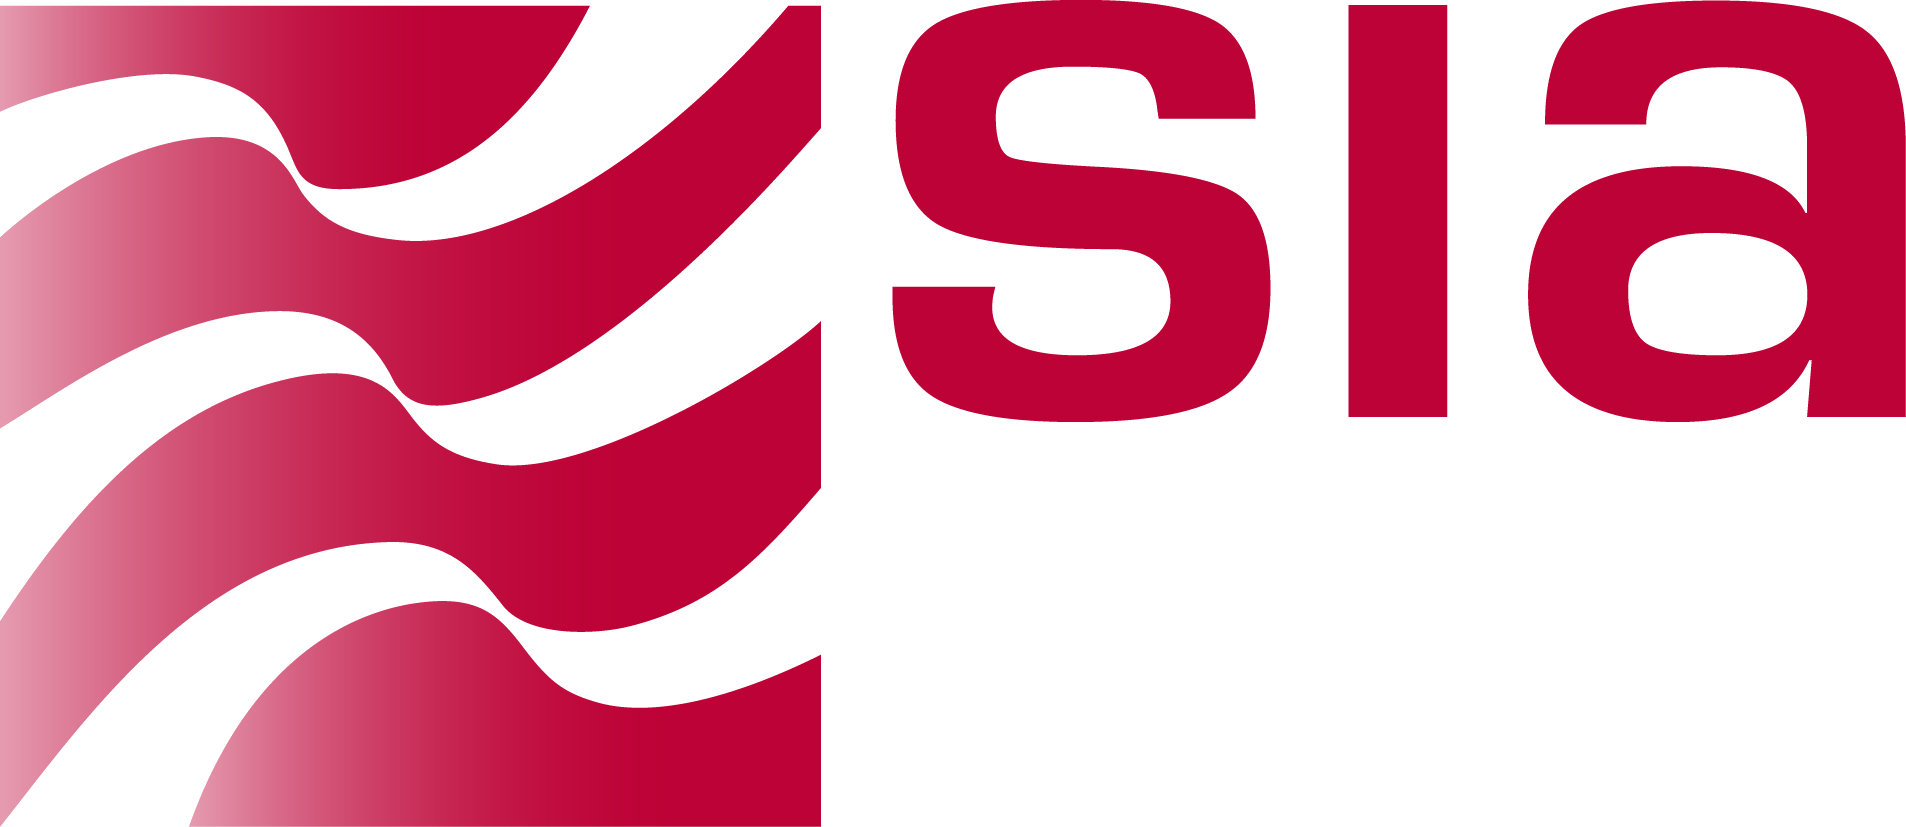 Extra Red   Advanced Business Partner Red Hat   Sia